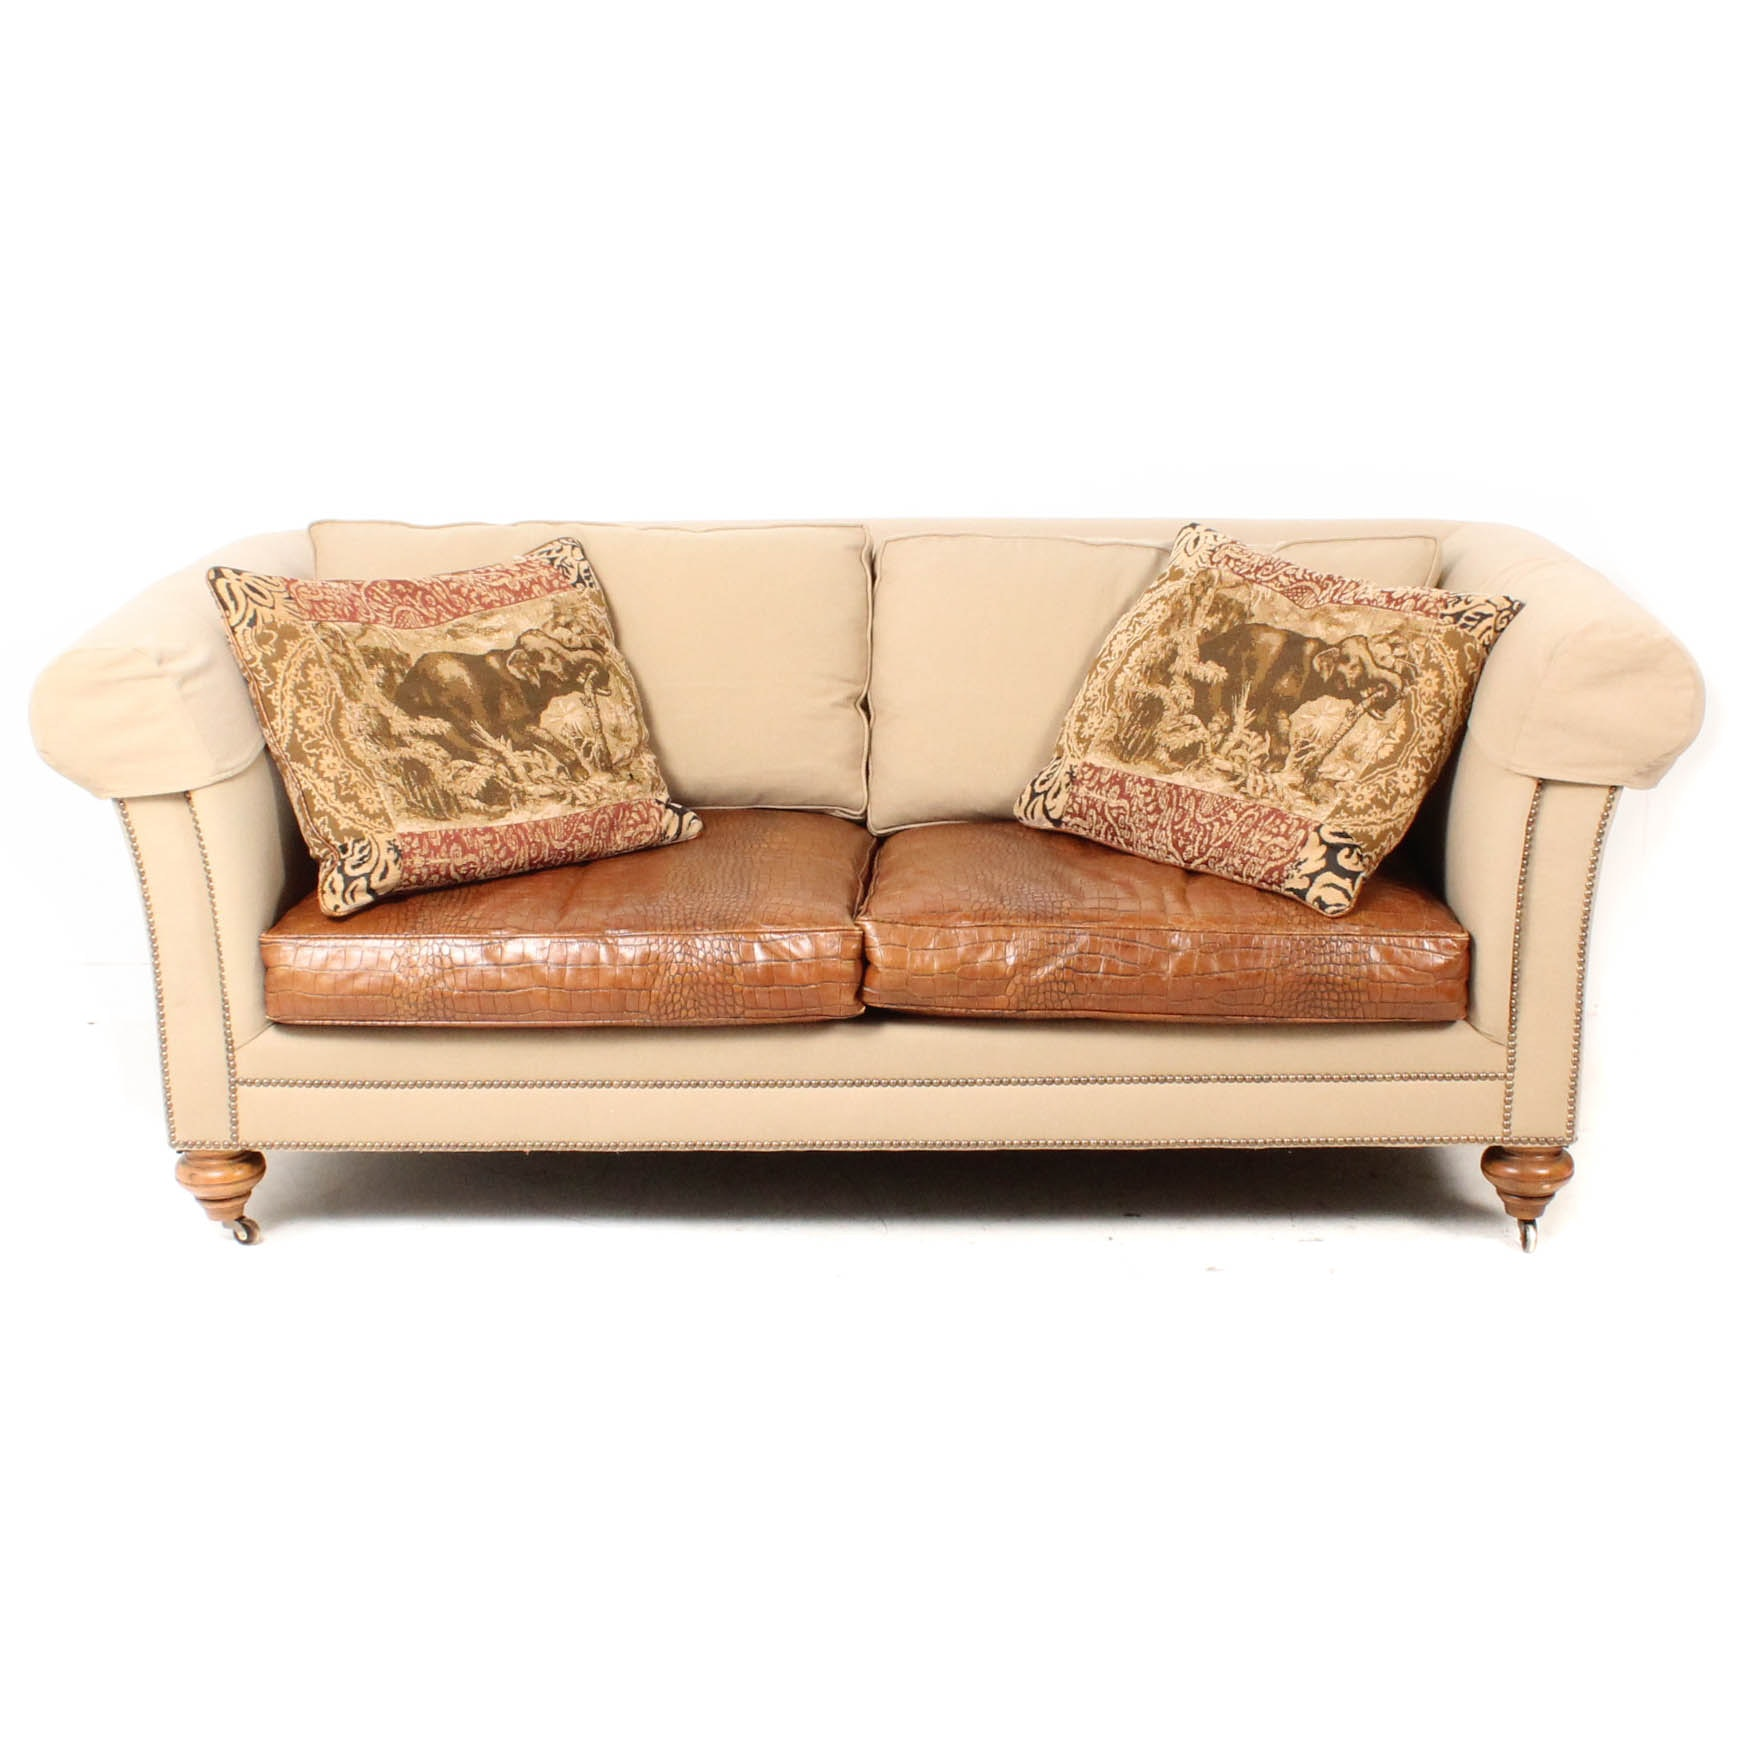 Custom Upholstered Sofa with Faux Alligator Seats